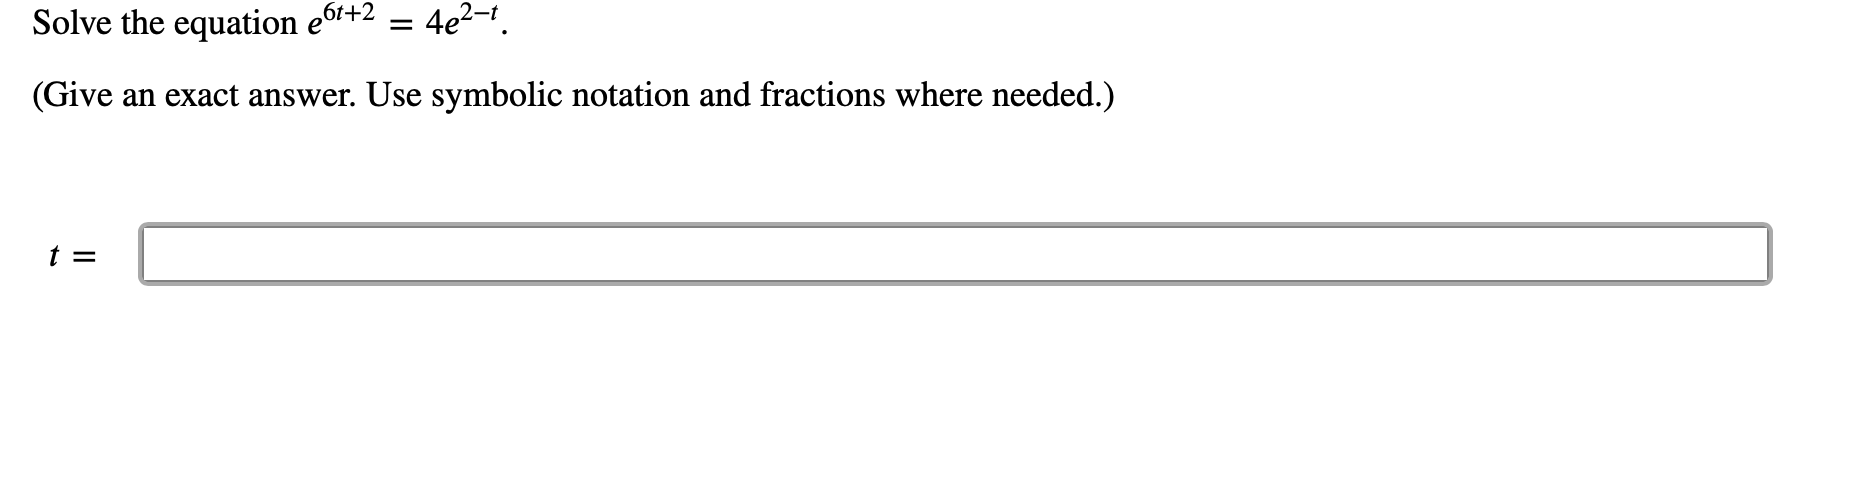 4e2-1 Solve the equation e6'+2 (Give an exact answer. Use symbolic notation and fractions where needed.) t =